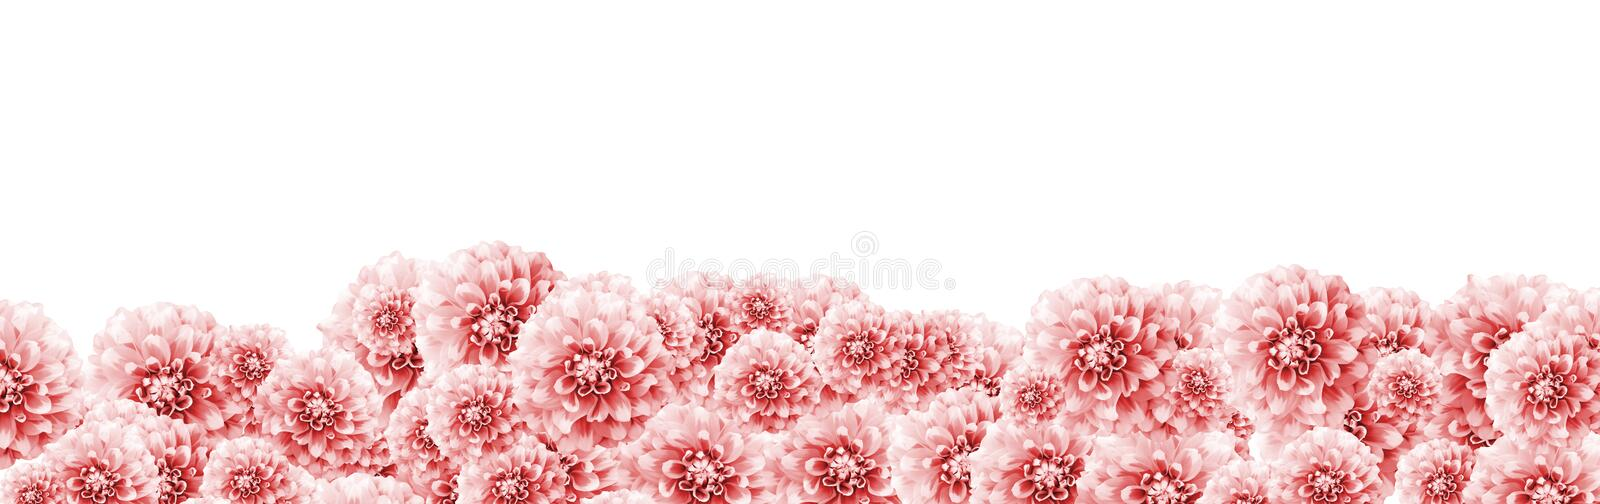 Fundo floral do quadro da beira da dália com luz - a dália branca cor-de-rosa floresce a cor do close up tonificada com beira da  fotografia de stock royalty free